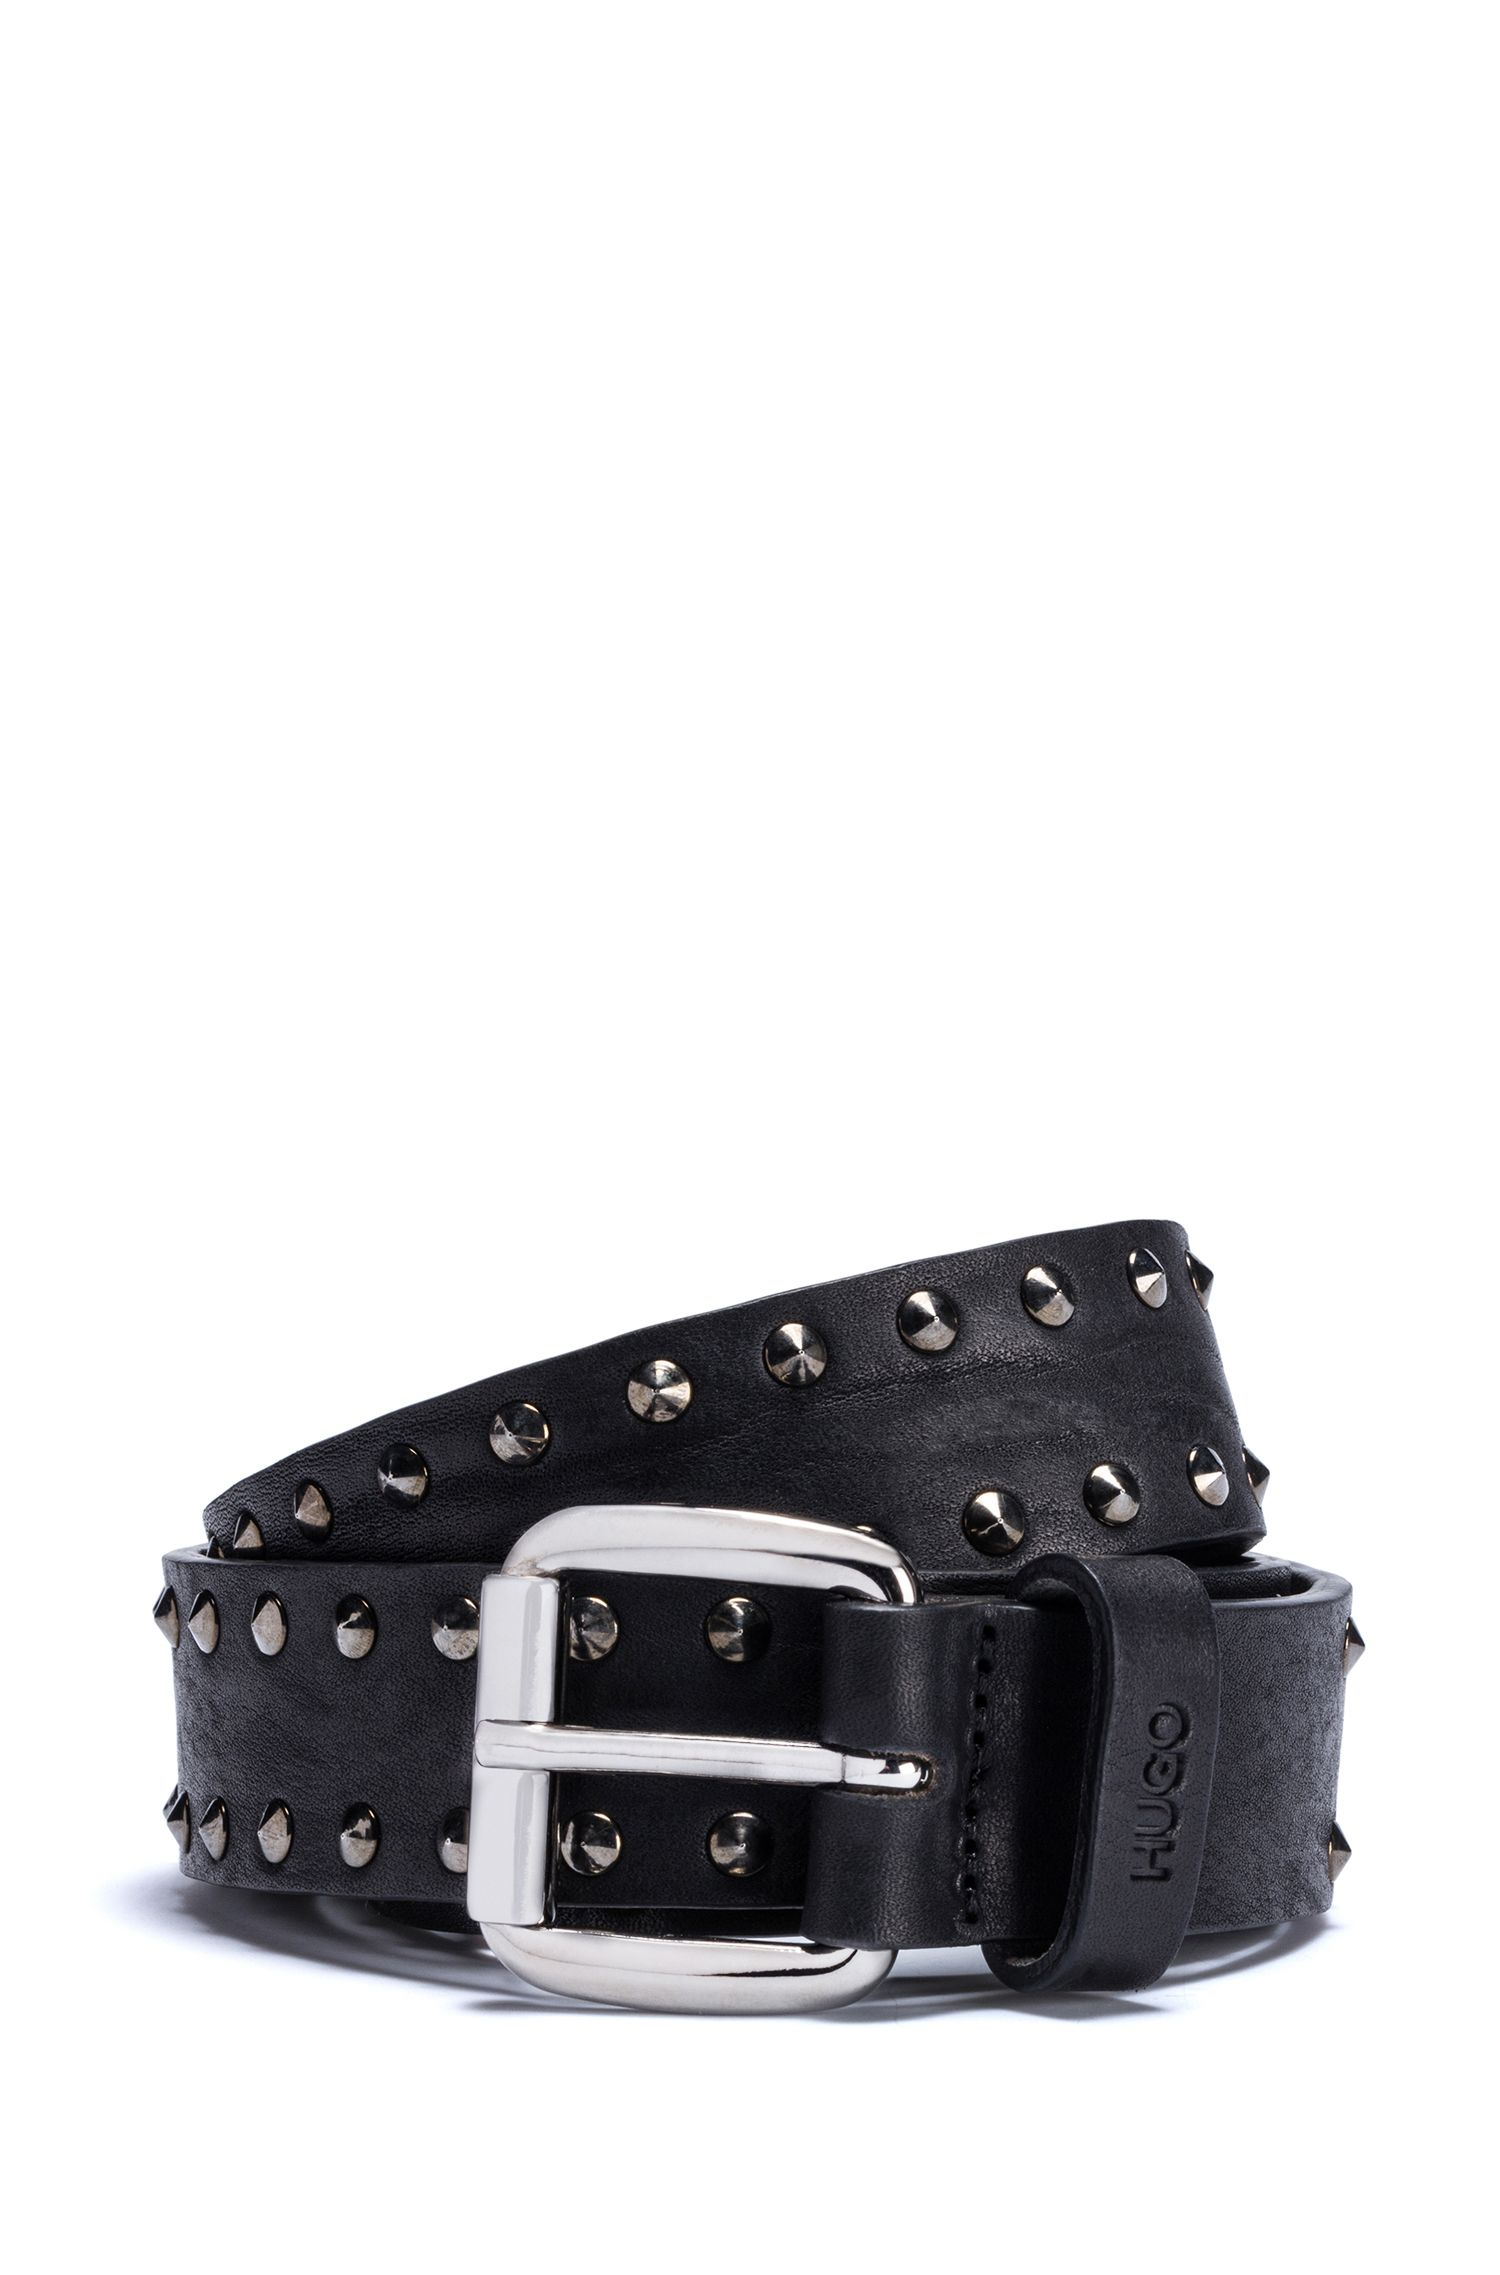 Studded Leather Belt | Giove Sz30, Black